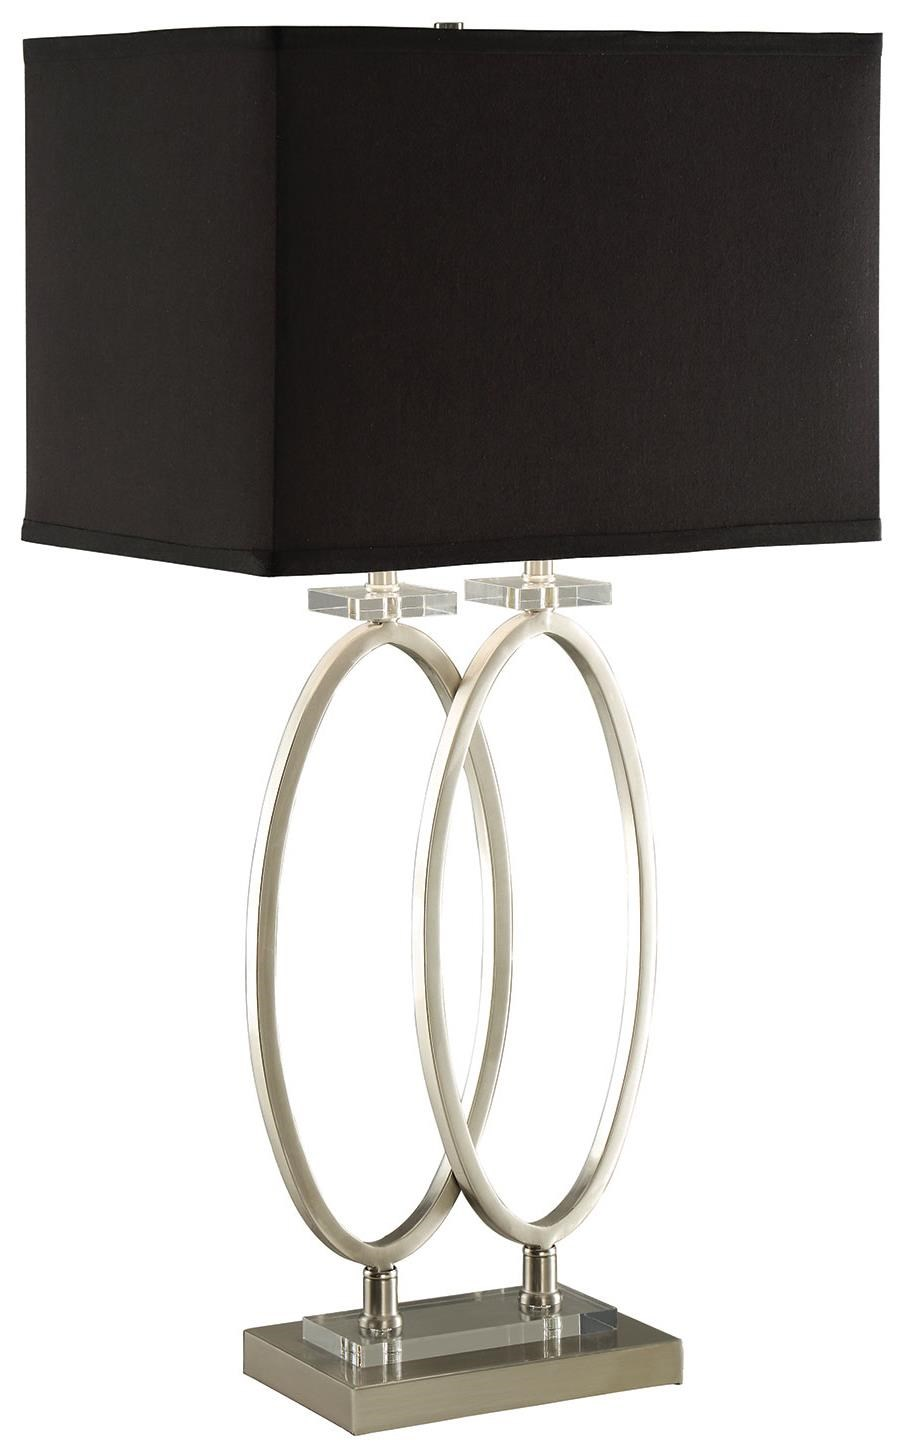 Coaster Table Lamps Brushed Nickel Finish Metal Table Lamp With Black Shade    Coaster Fine Furniture